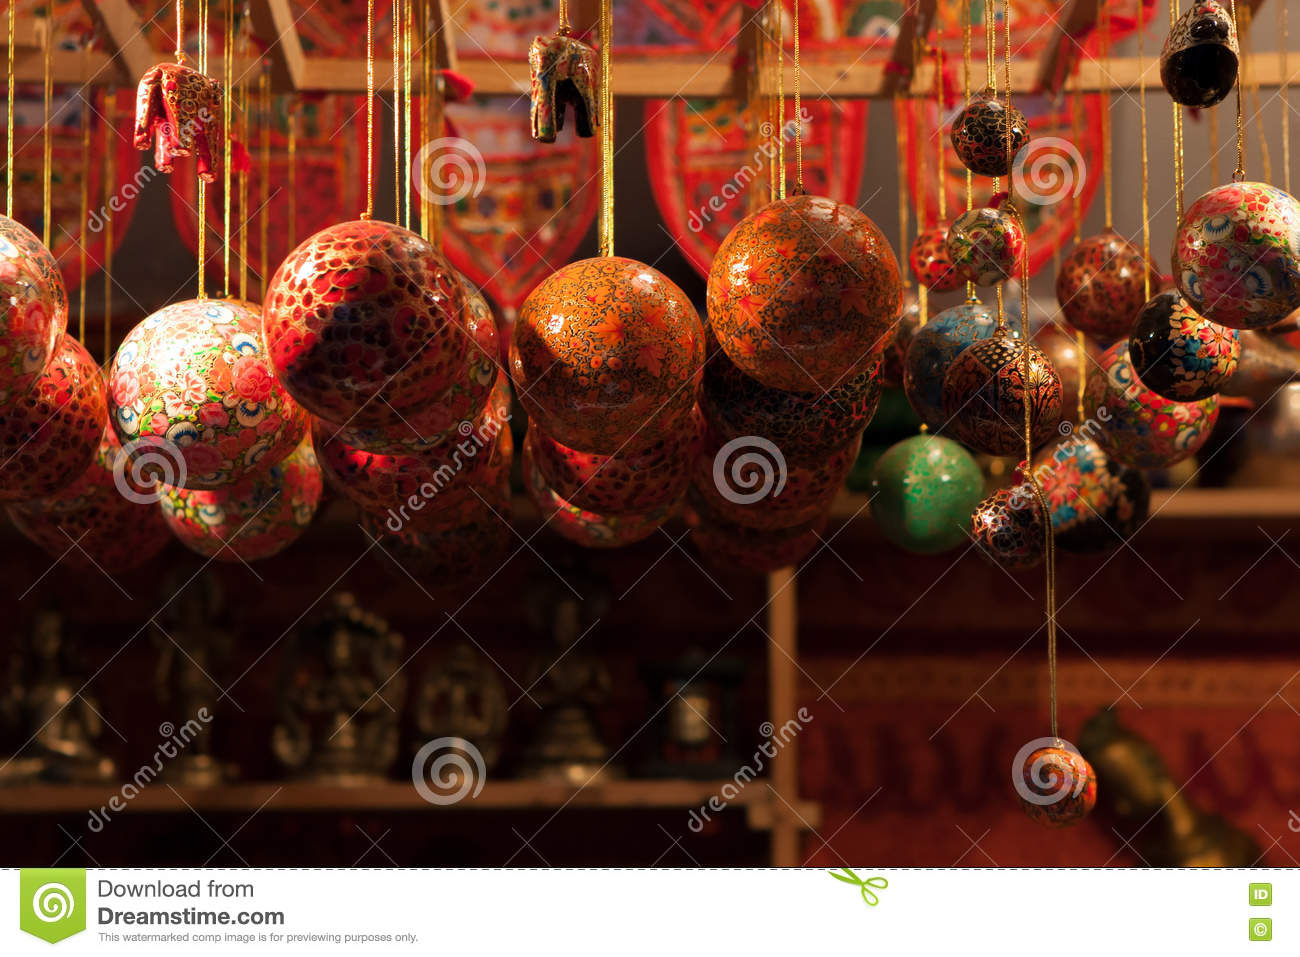 Red glass christmas ornaments - Gold Glass Christmas Ornaments Red And Gold Colored Glass Christmas Ornaments Hanging In A Kiosk